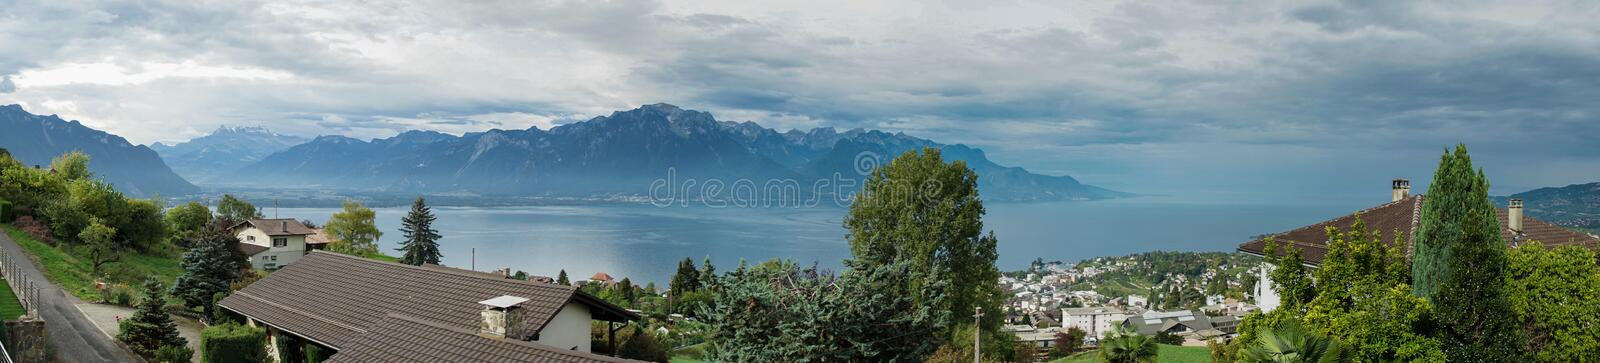 MONTREUX/SWITZERLAND - SEPTEMBER 16 : Panoramic View of Lake Gen. Eva near Montreux in Switzerland on September 16, 2015 stock photography